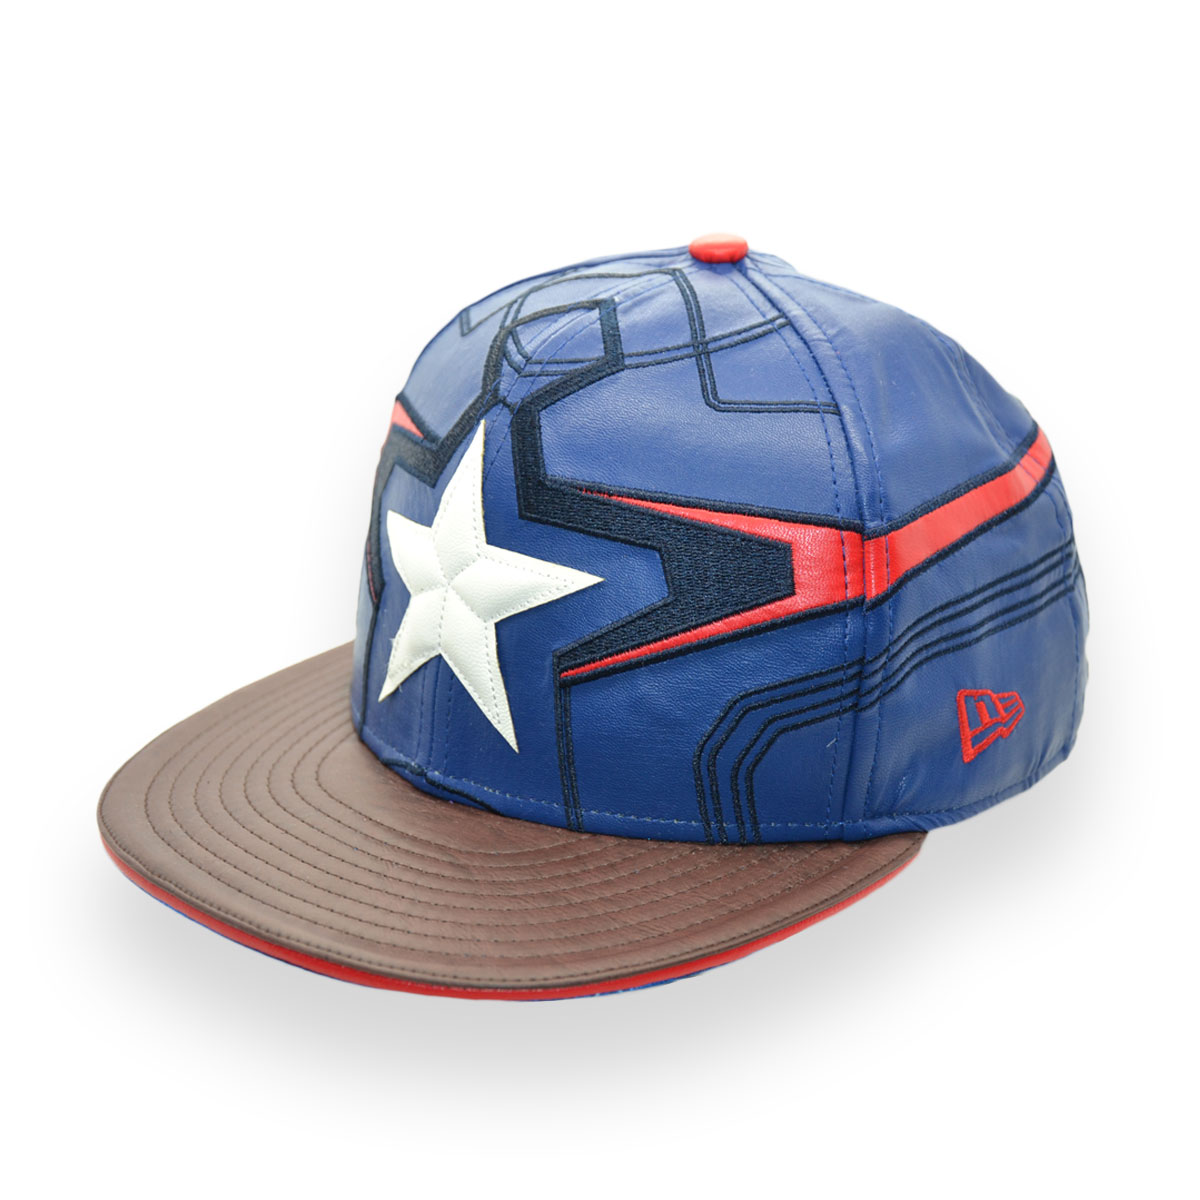 9c765054e5968 NEW ERA AVENGERS AGE OF ULTRON MARVEL CAPTAIN AMERICA 59FIFTY CAP ...